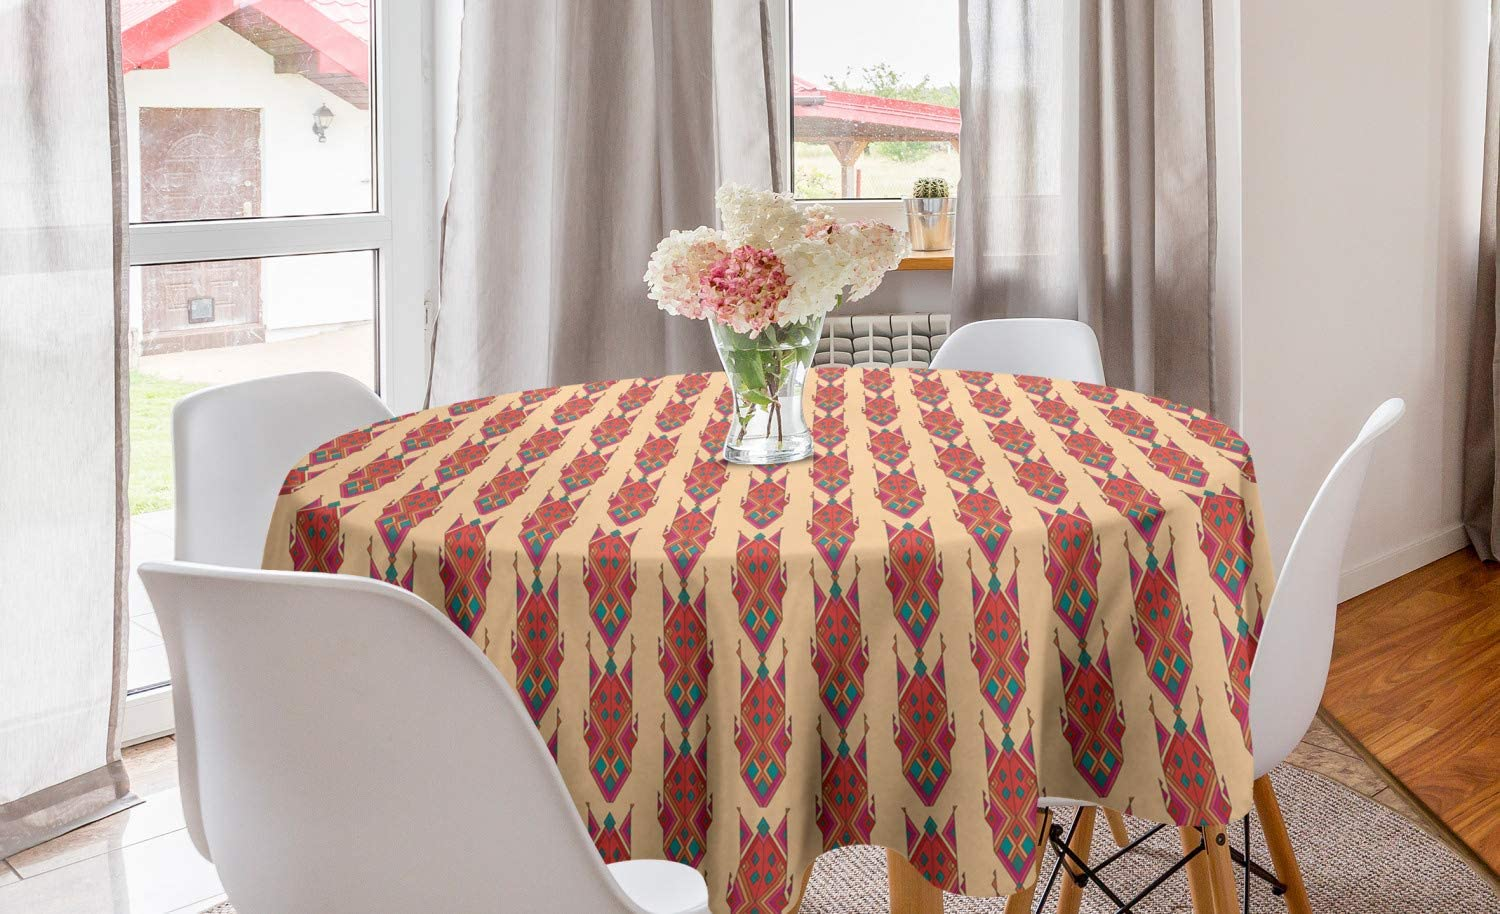 Lunarable Ethnic Round Tablecloth, Mexican Culture Pattern Mayan Inspired Rhombus and Arrow Design, Circle Table Cloth Cover for Dining Room Kitchen Decoration, 60